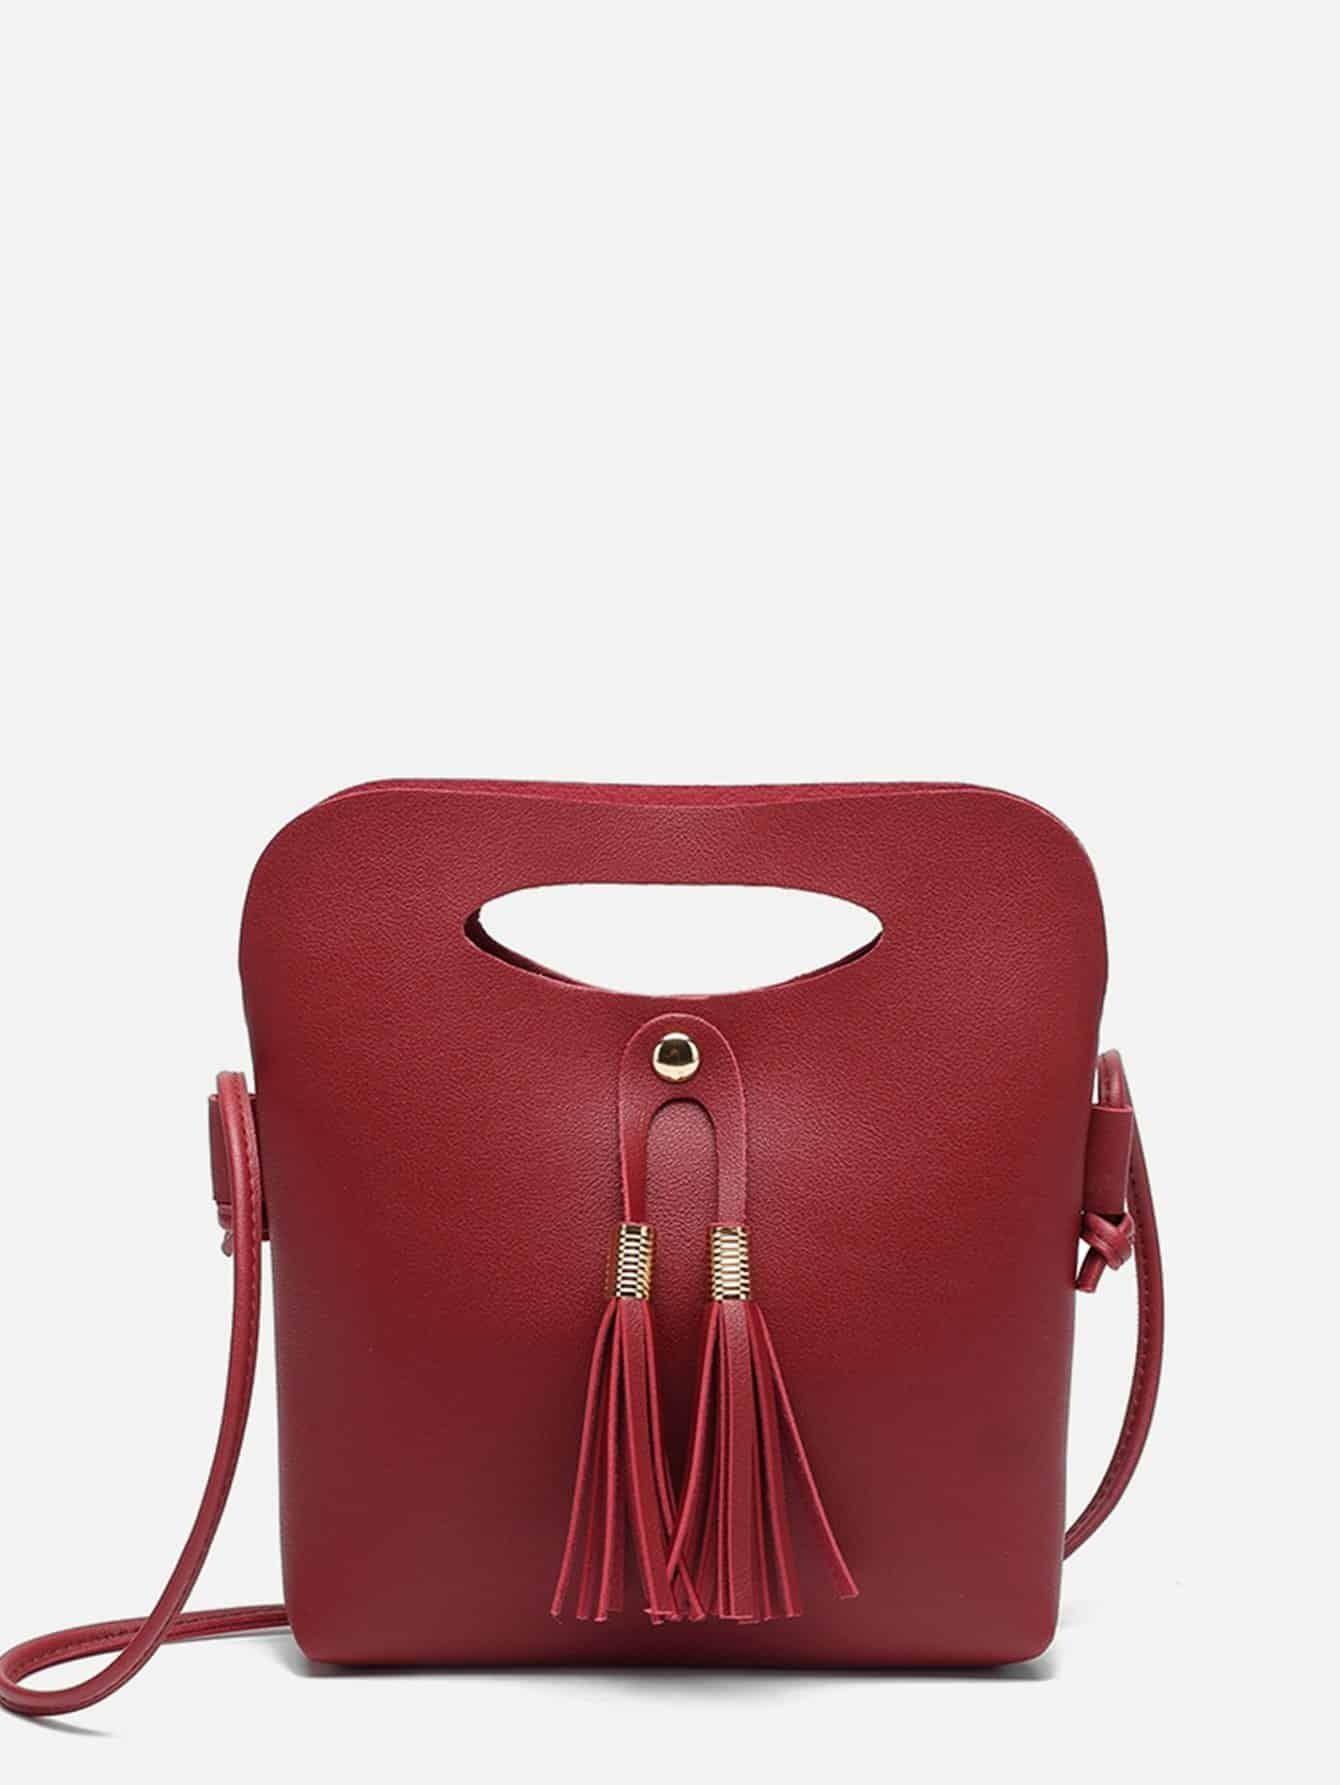 где купить Tassel Decor Shoulder Bag дешево